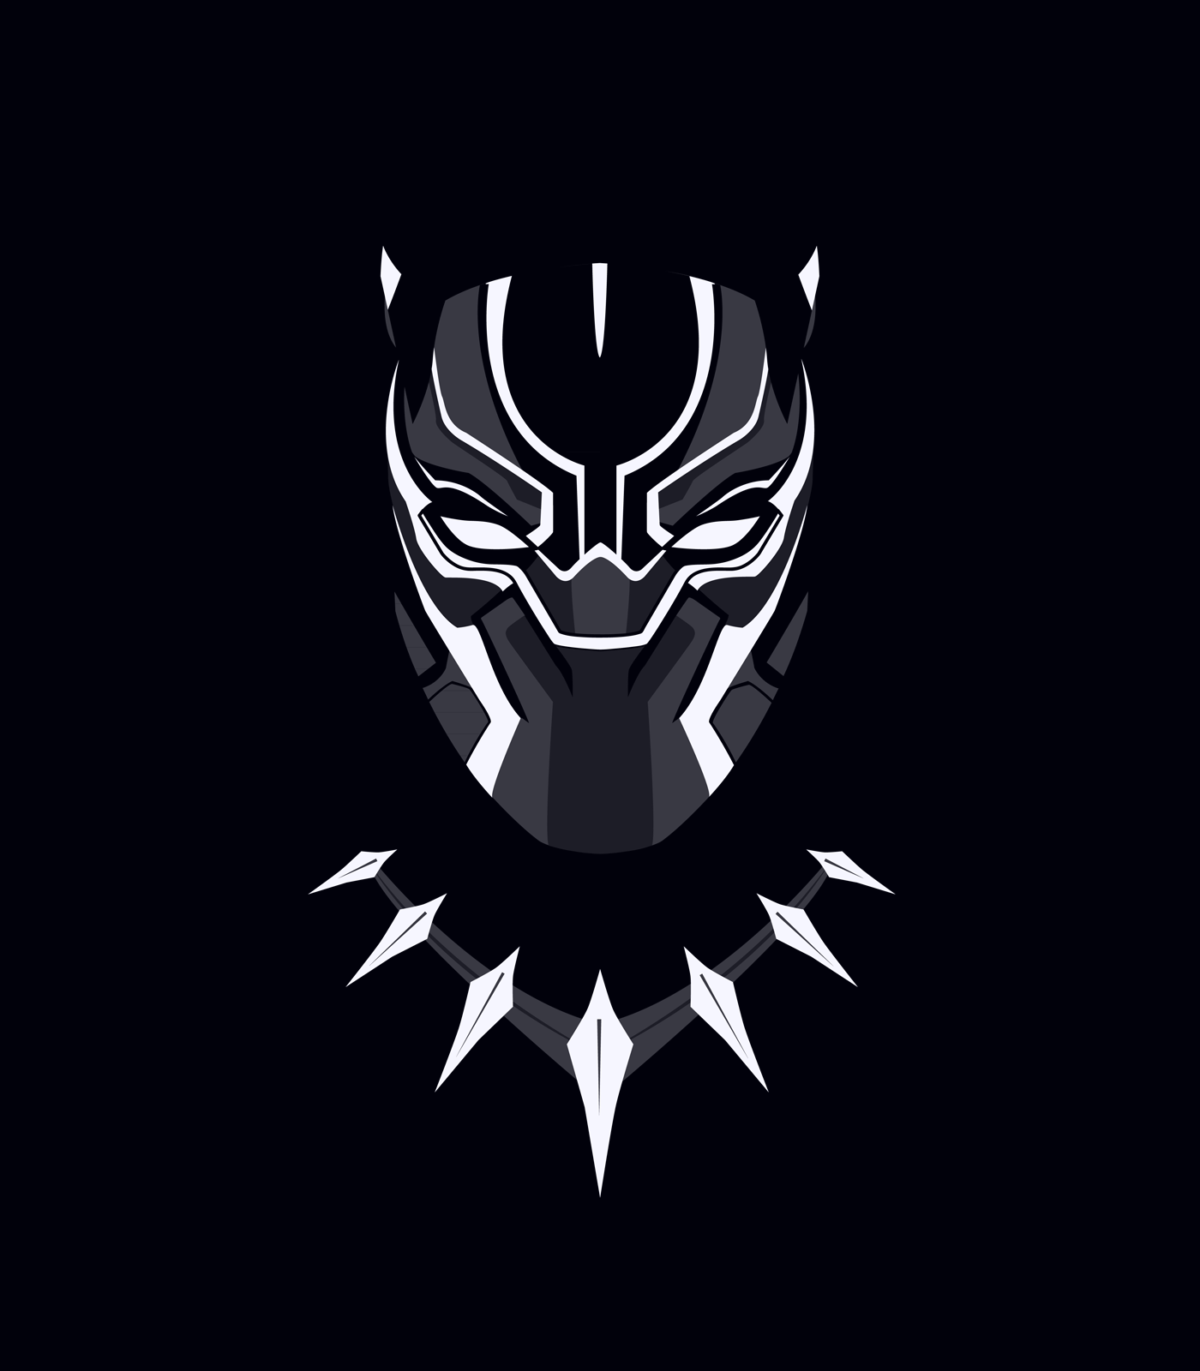 Collection of Black Panther Wallpapers on HDWallpapers